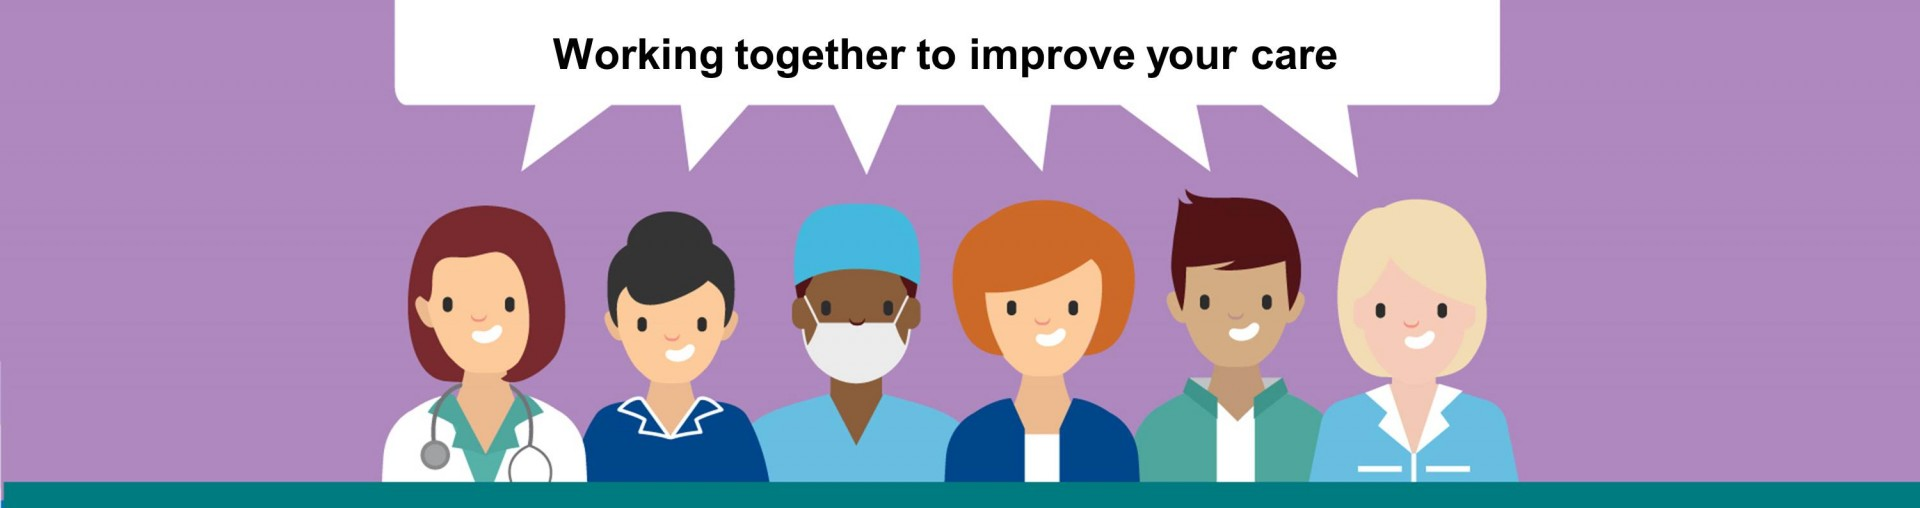 Leeds Care Record: Working together to improve your care